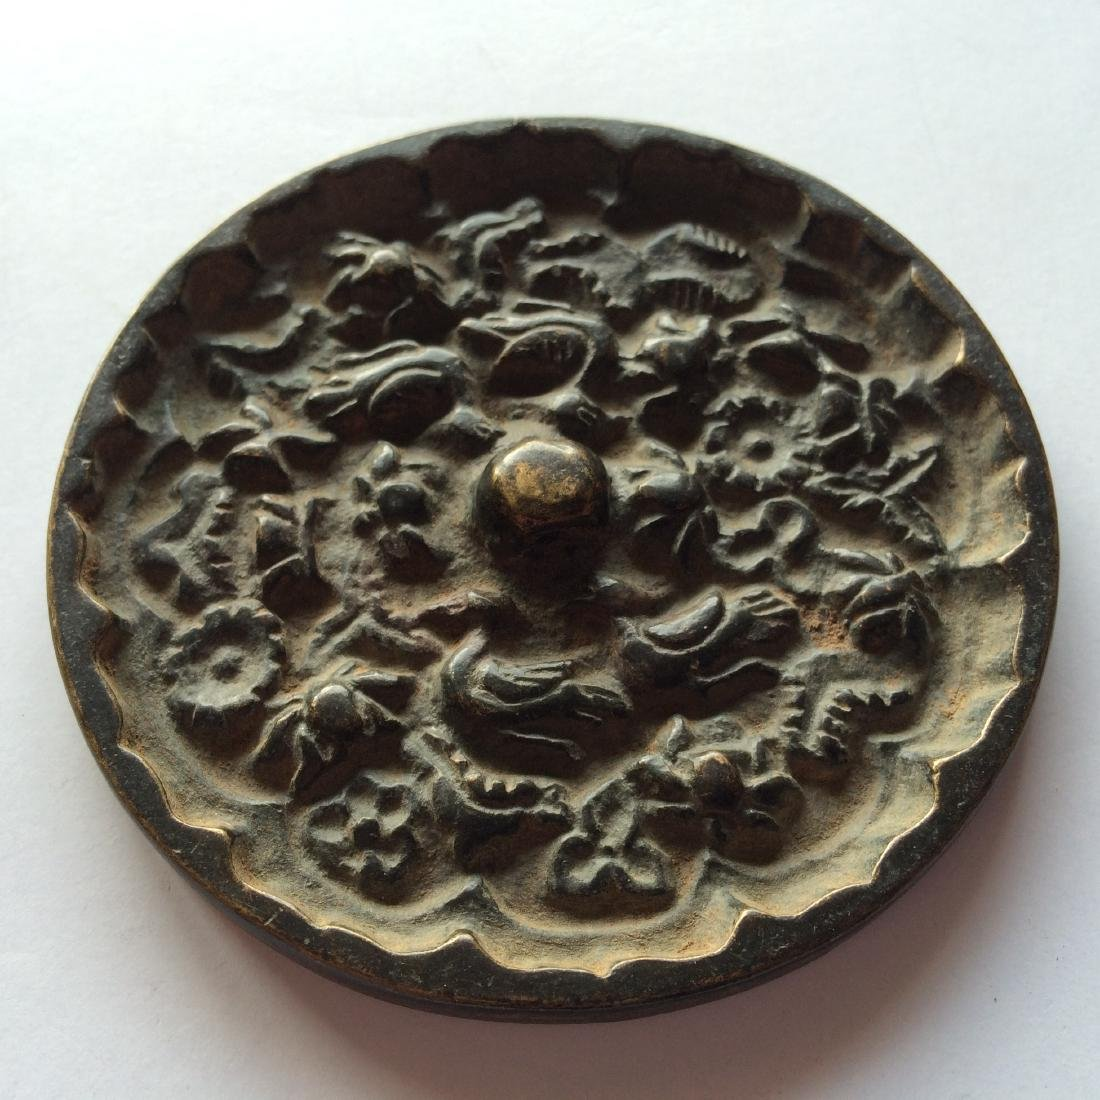 Antique Chinese Bronze Mirror Engraved with Birds